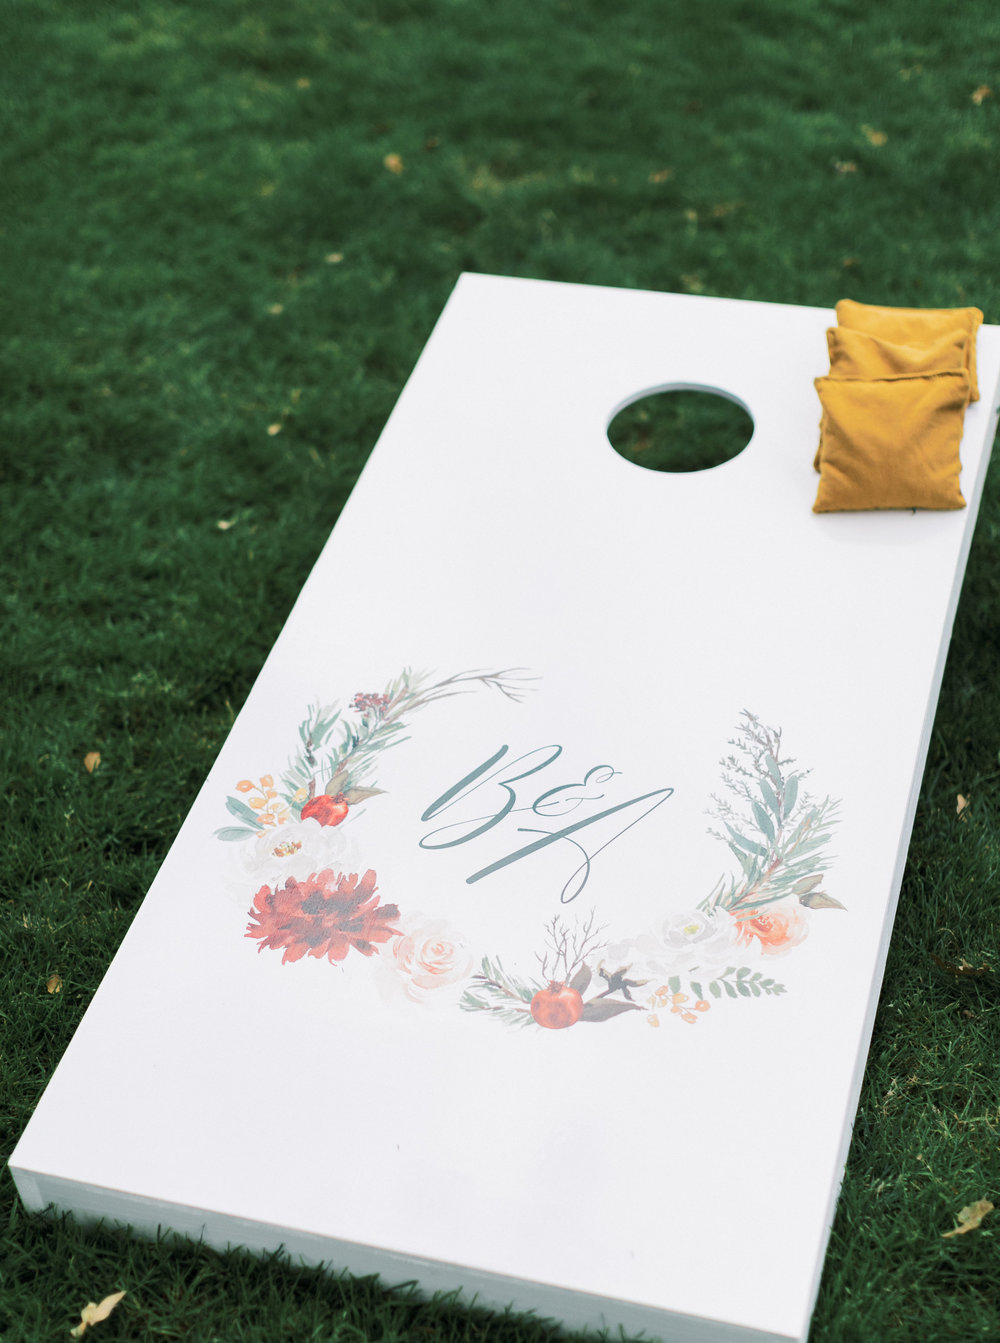 71. Personalized Bag Toss.jpg